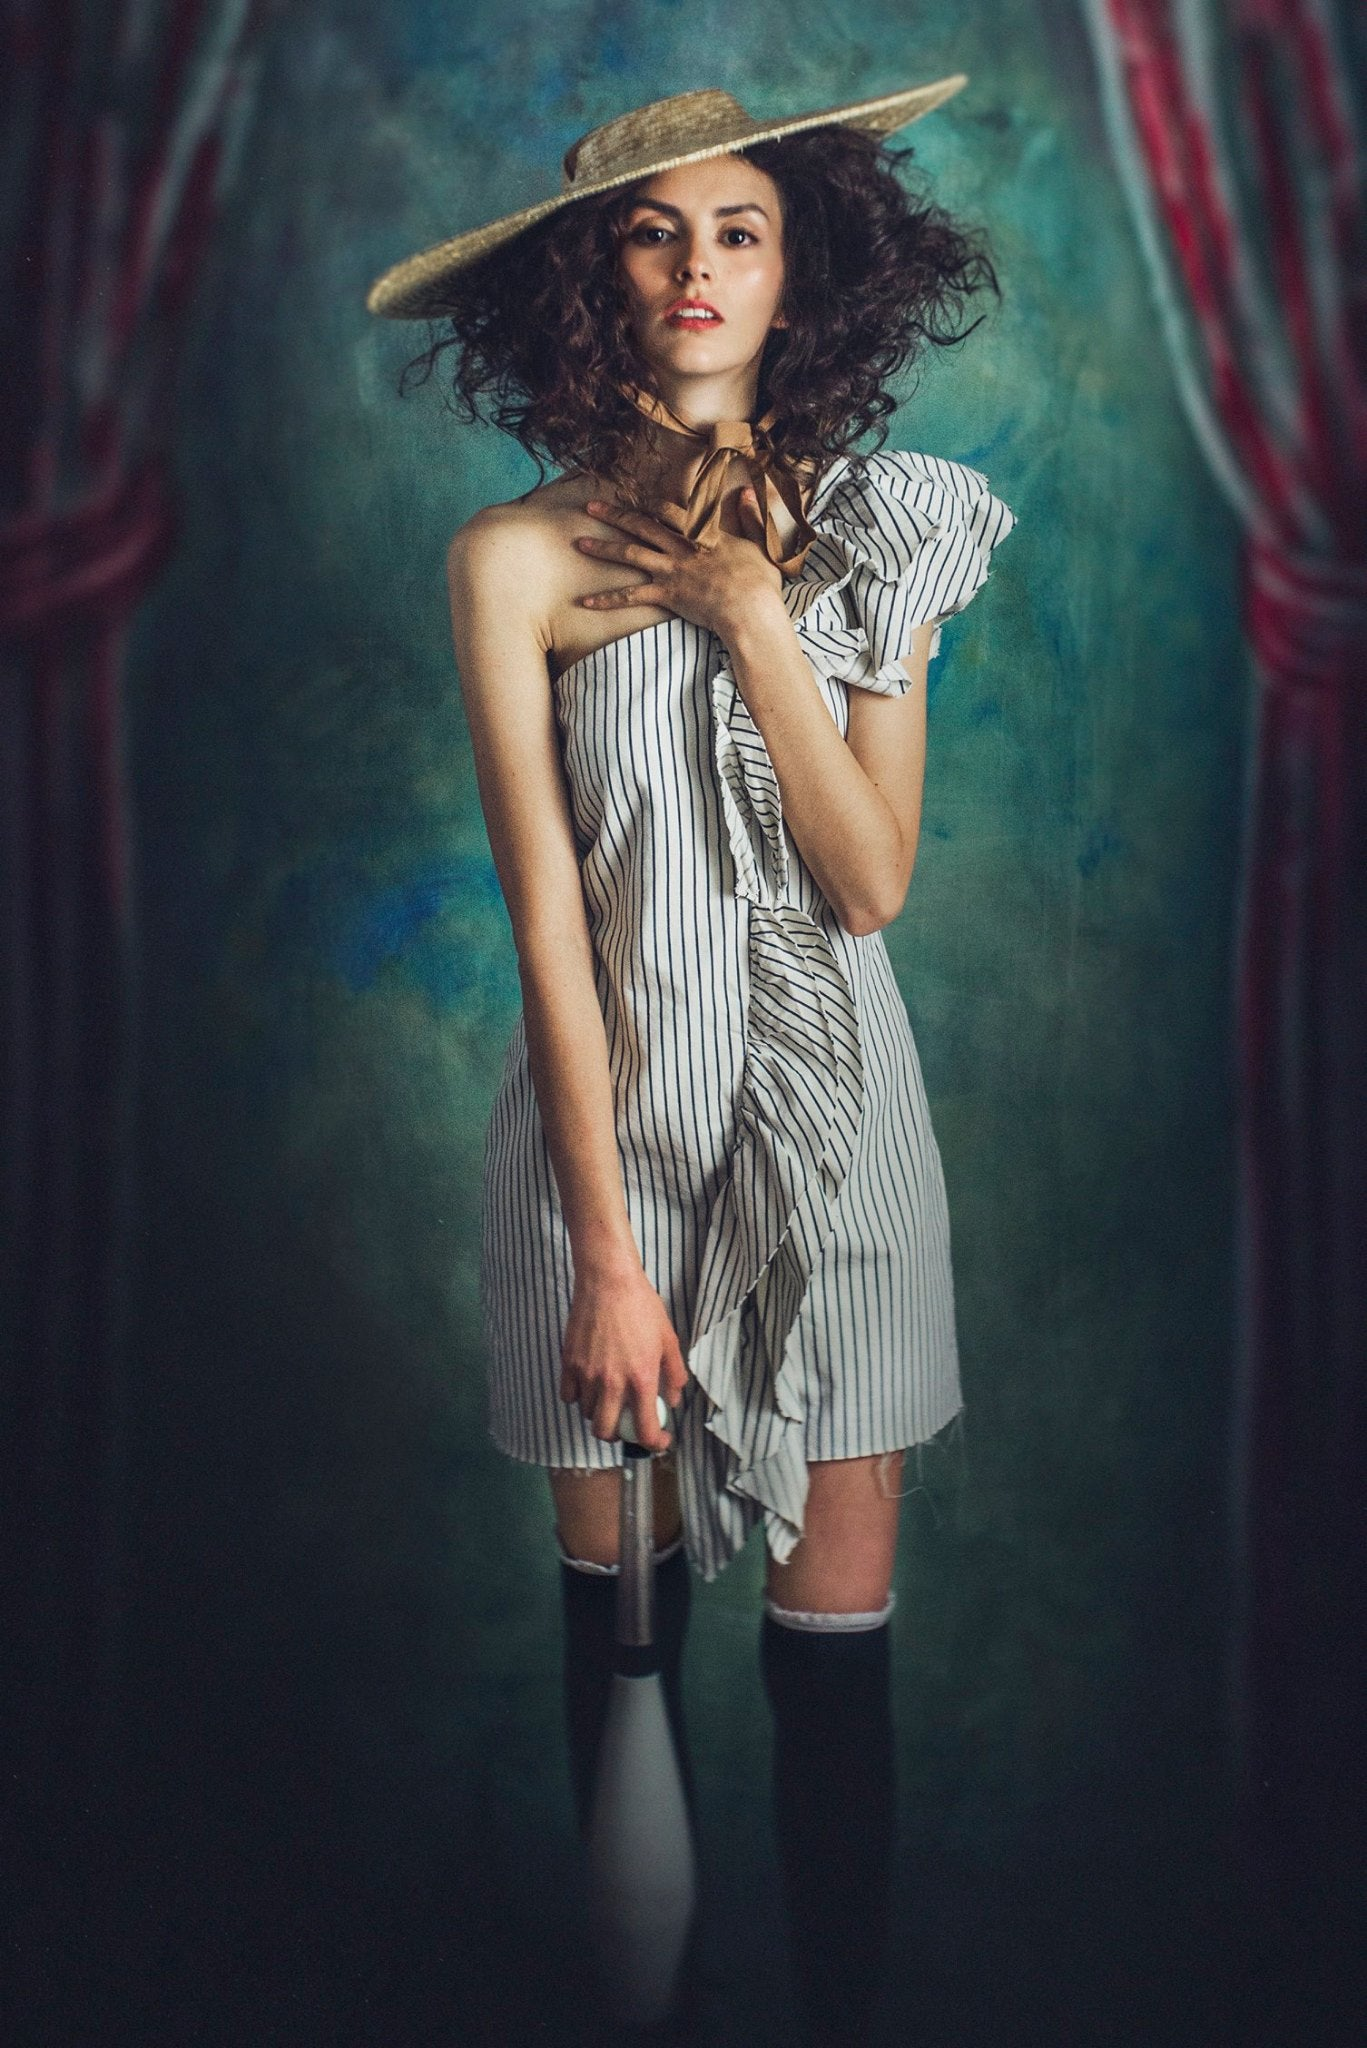 woman with striped romper big straw hat curly brown hair dark red lipstick tall socks and skinny legs Lensbaby featured photos